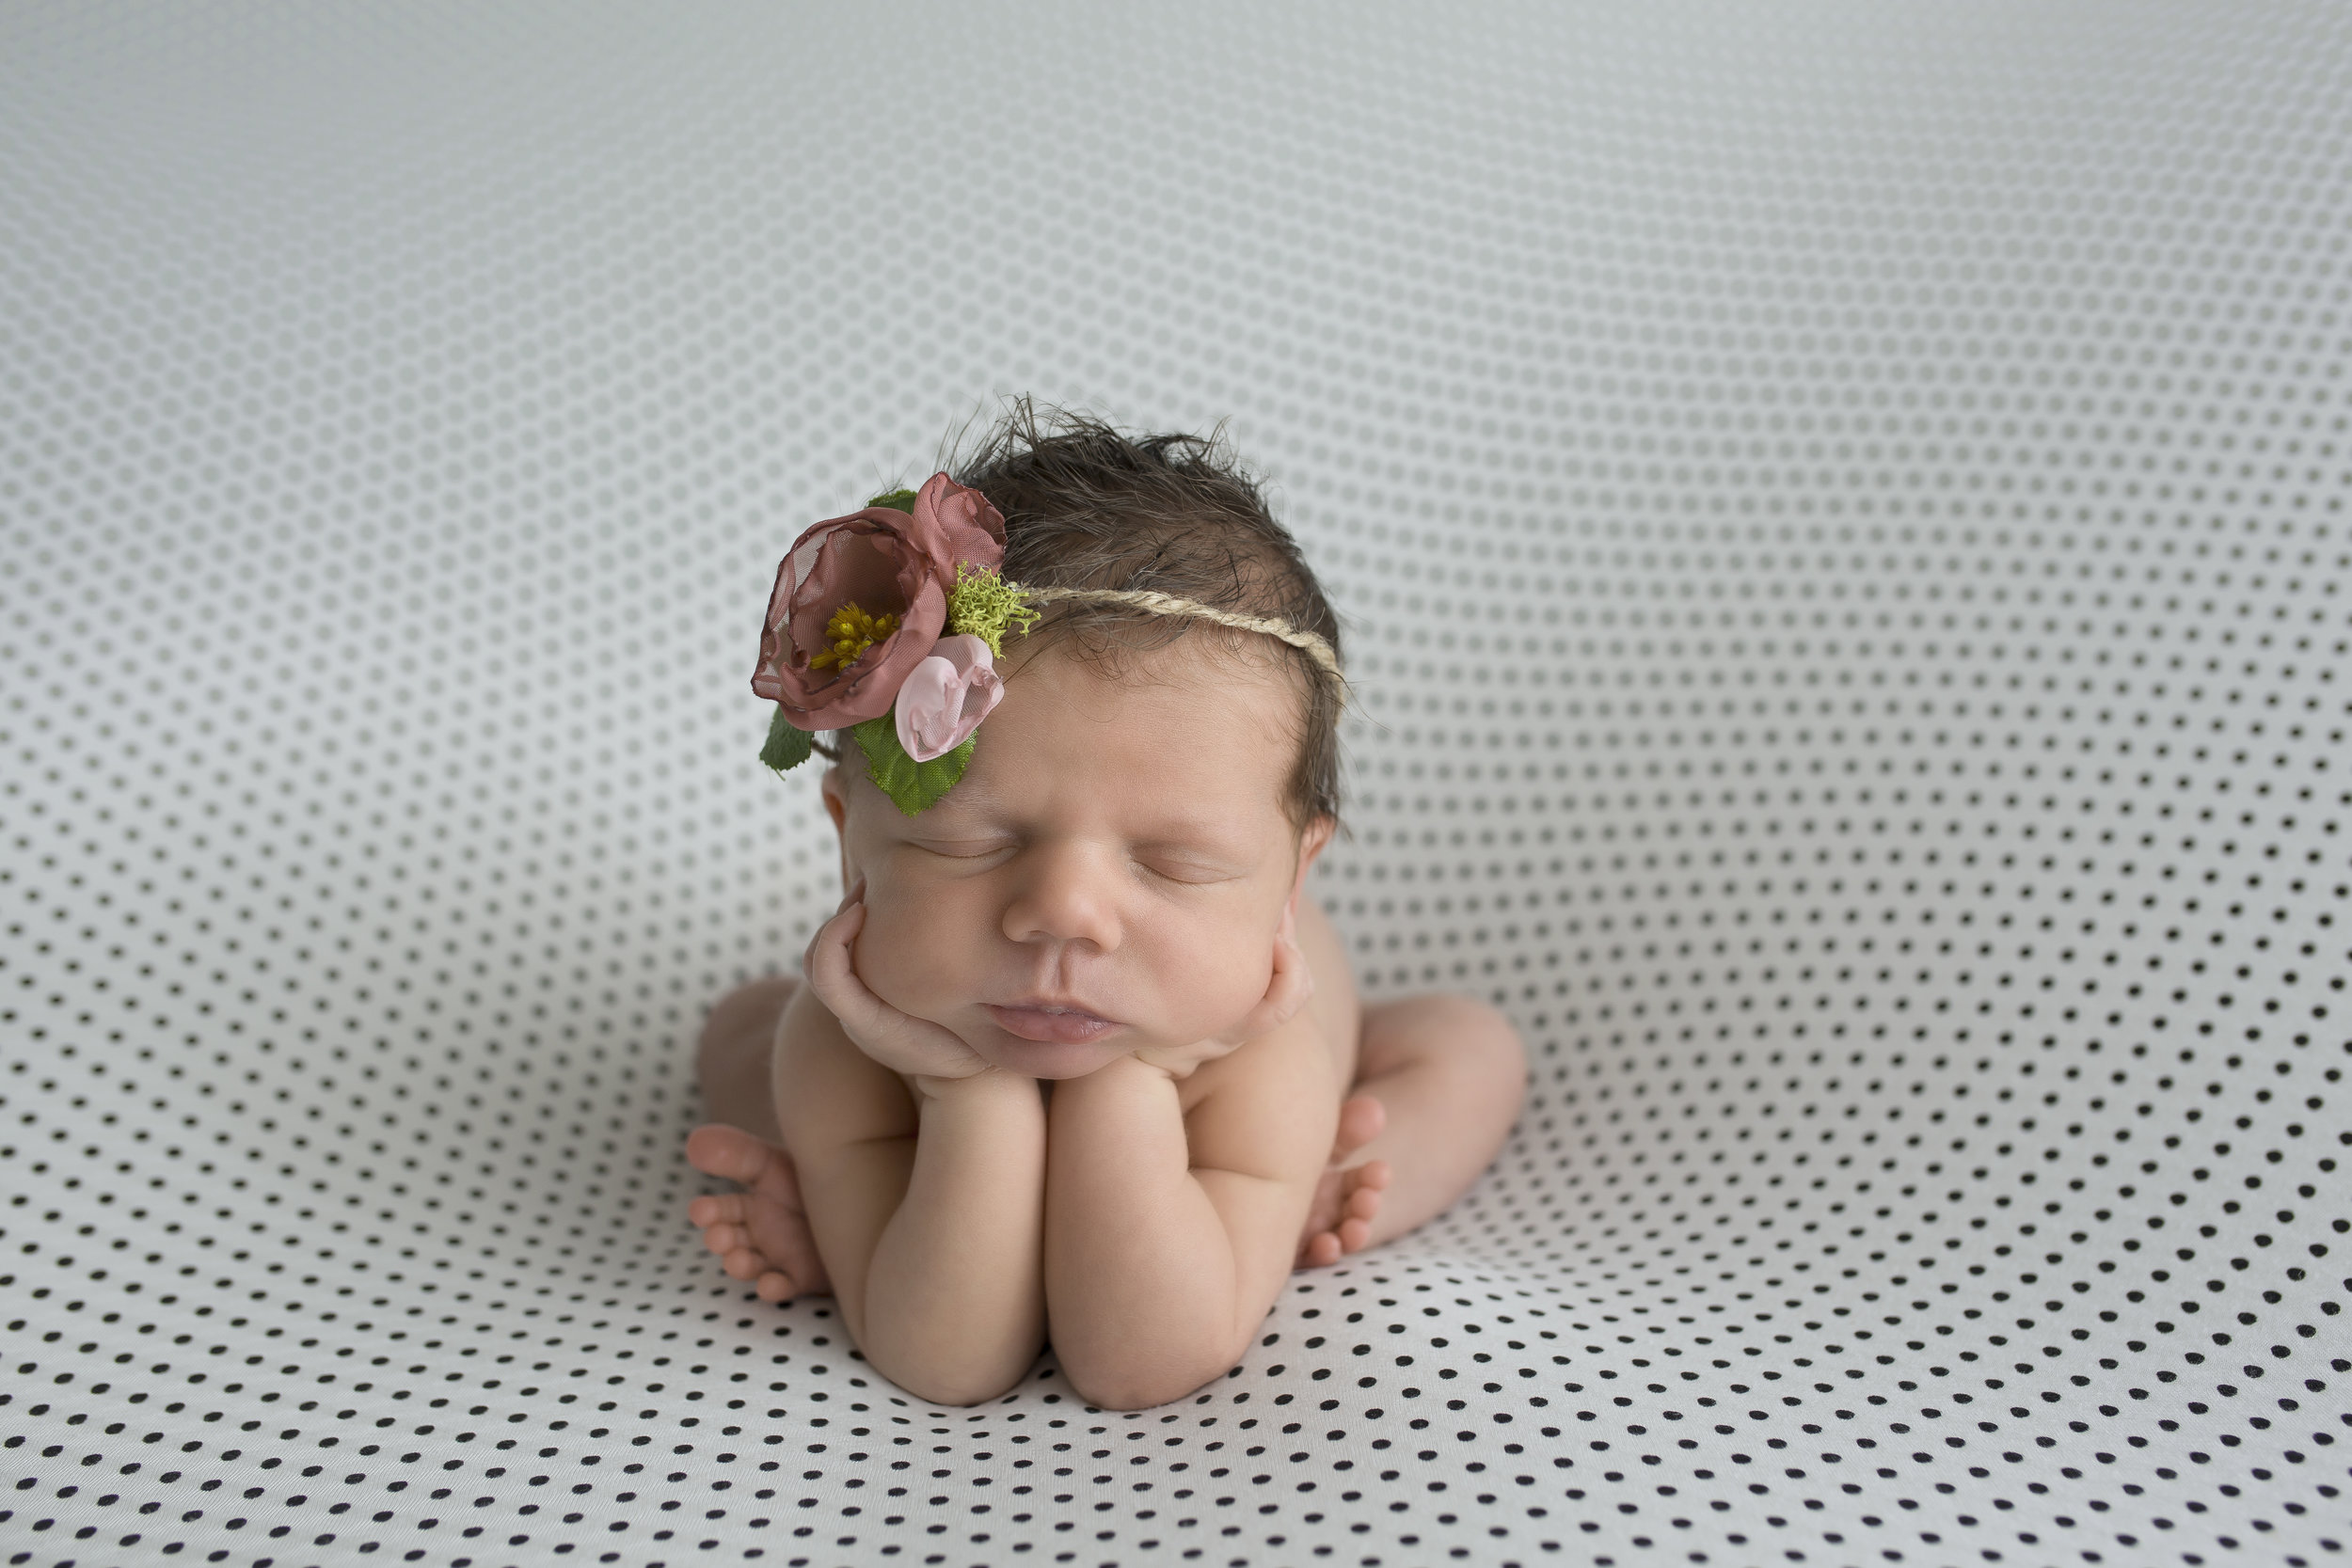 Dallas Newborn Photographer | Chelle Cates Photography | www.chellecates.com